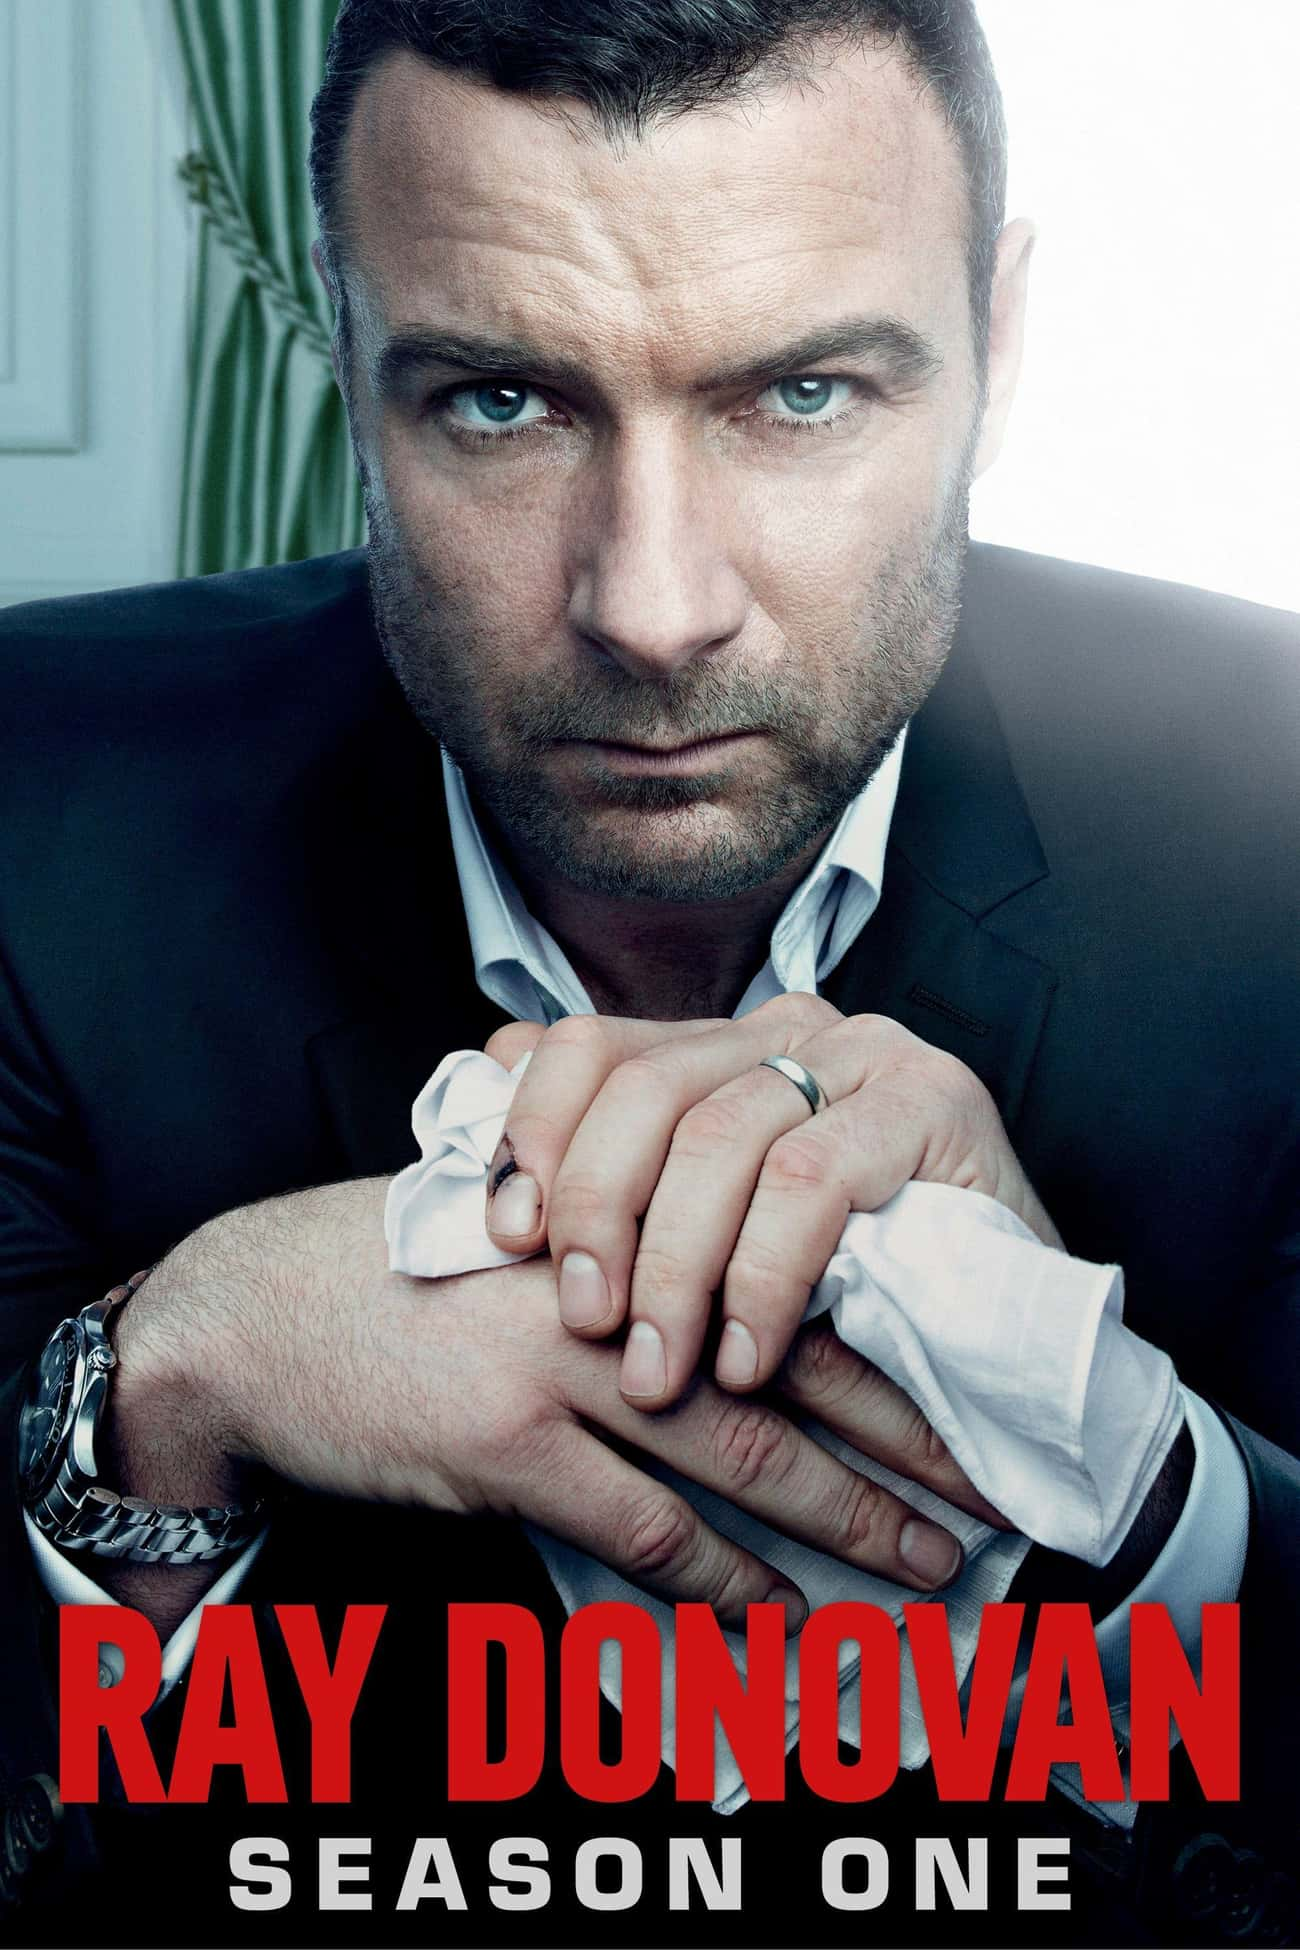 Ray Donovan - Season 1 is listed (or ranked) 1 on the list Ranking the Best Seasons of 'Ray Donovan'